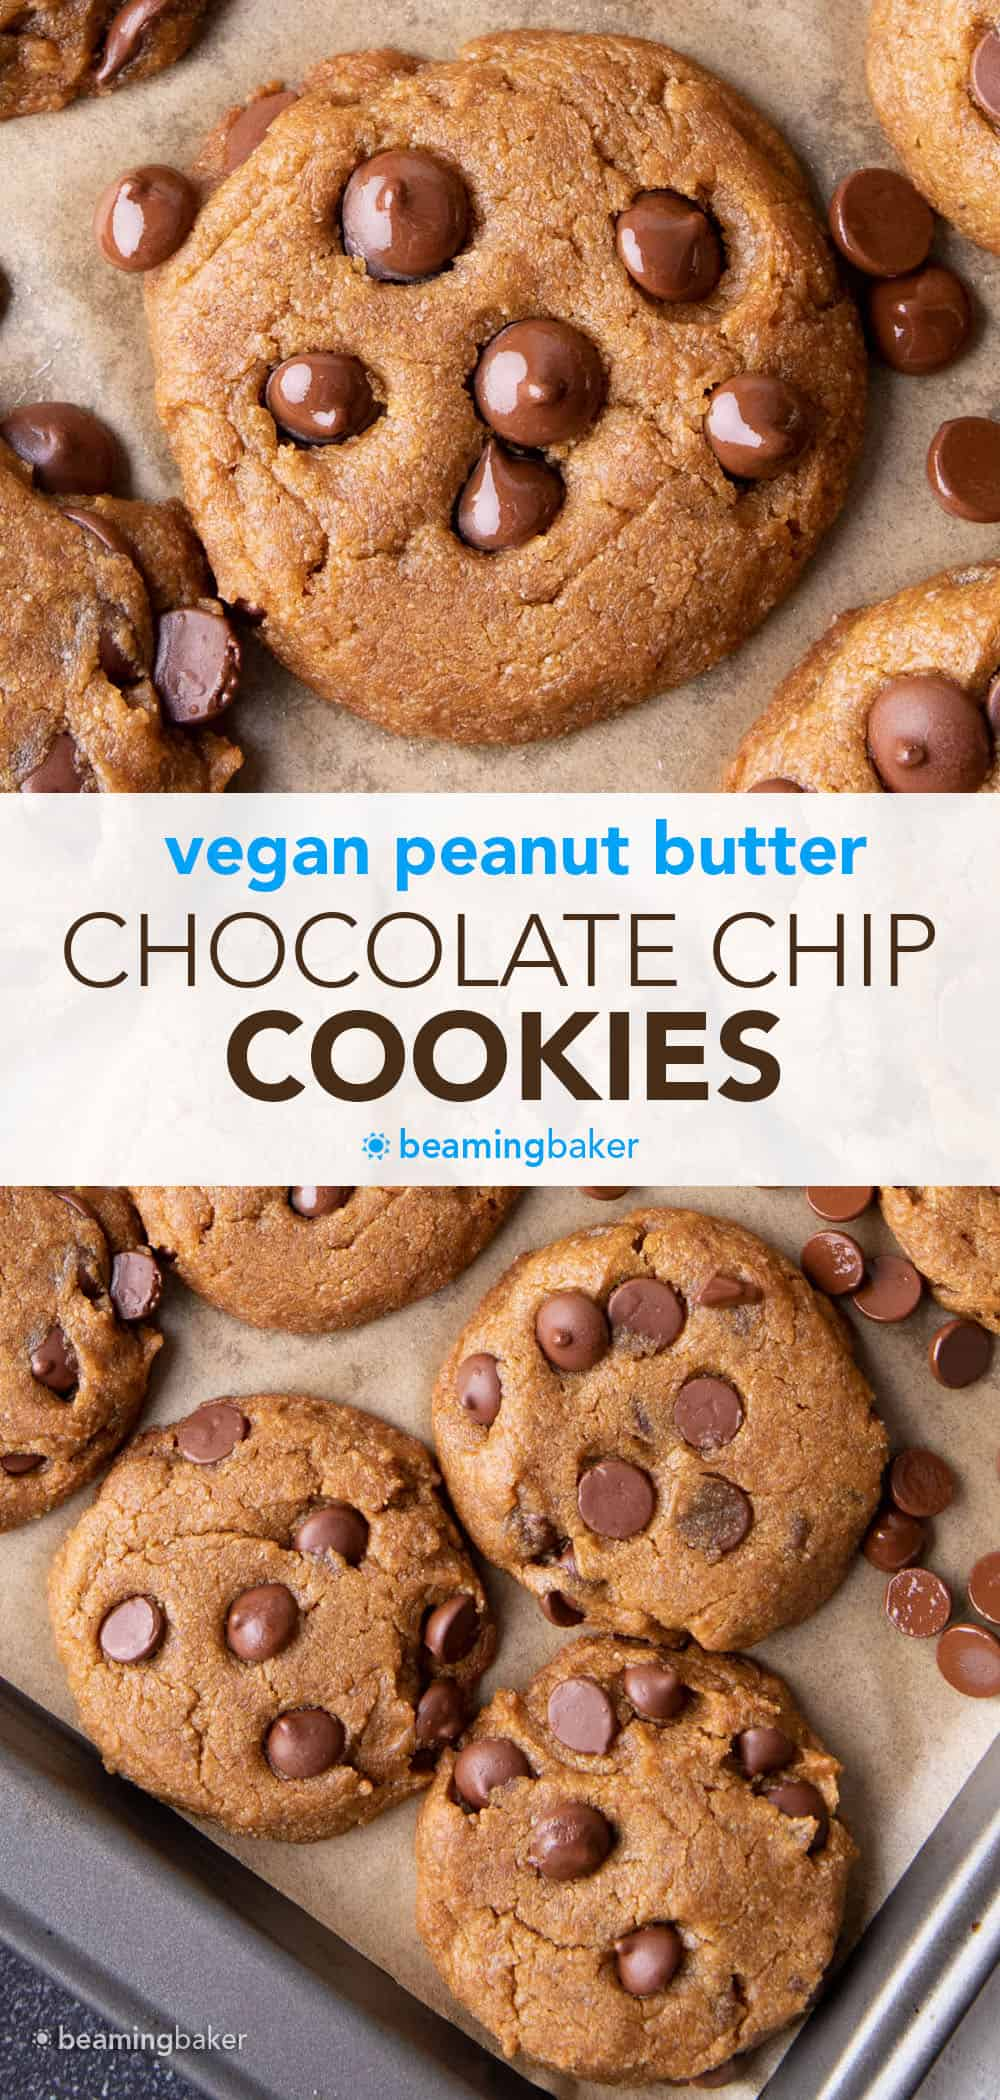 Vegan Peanut Butter Chocolate Chip Cookies: an easy recipe for chewy, moist vegan peanut butter chocolate chip cookies bursting with deep peanut butter flavor. #Vegan #PeanutButter #ChocolateChip #Cookies | Recipe at BeamingBaker.com